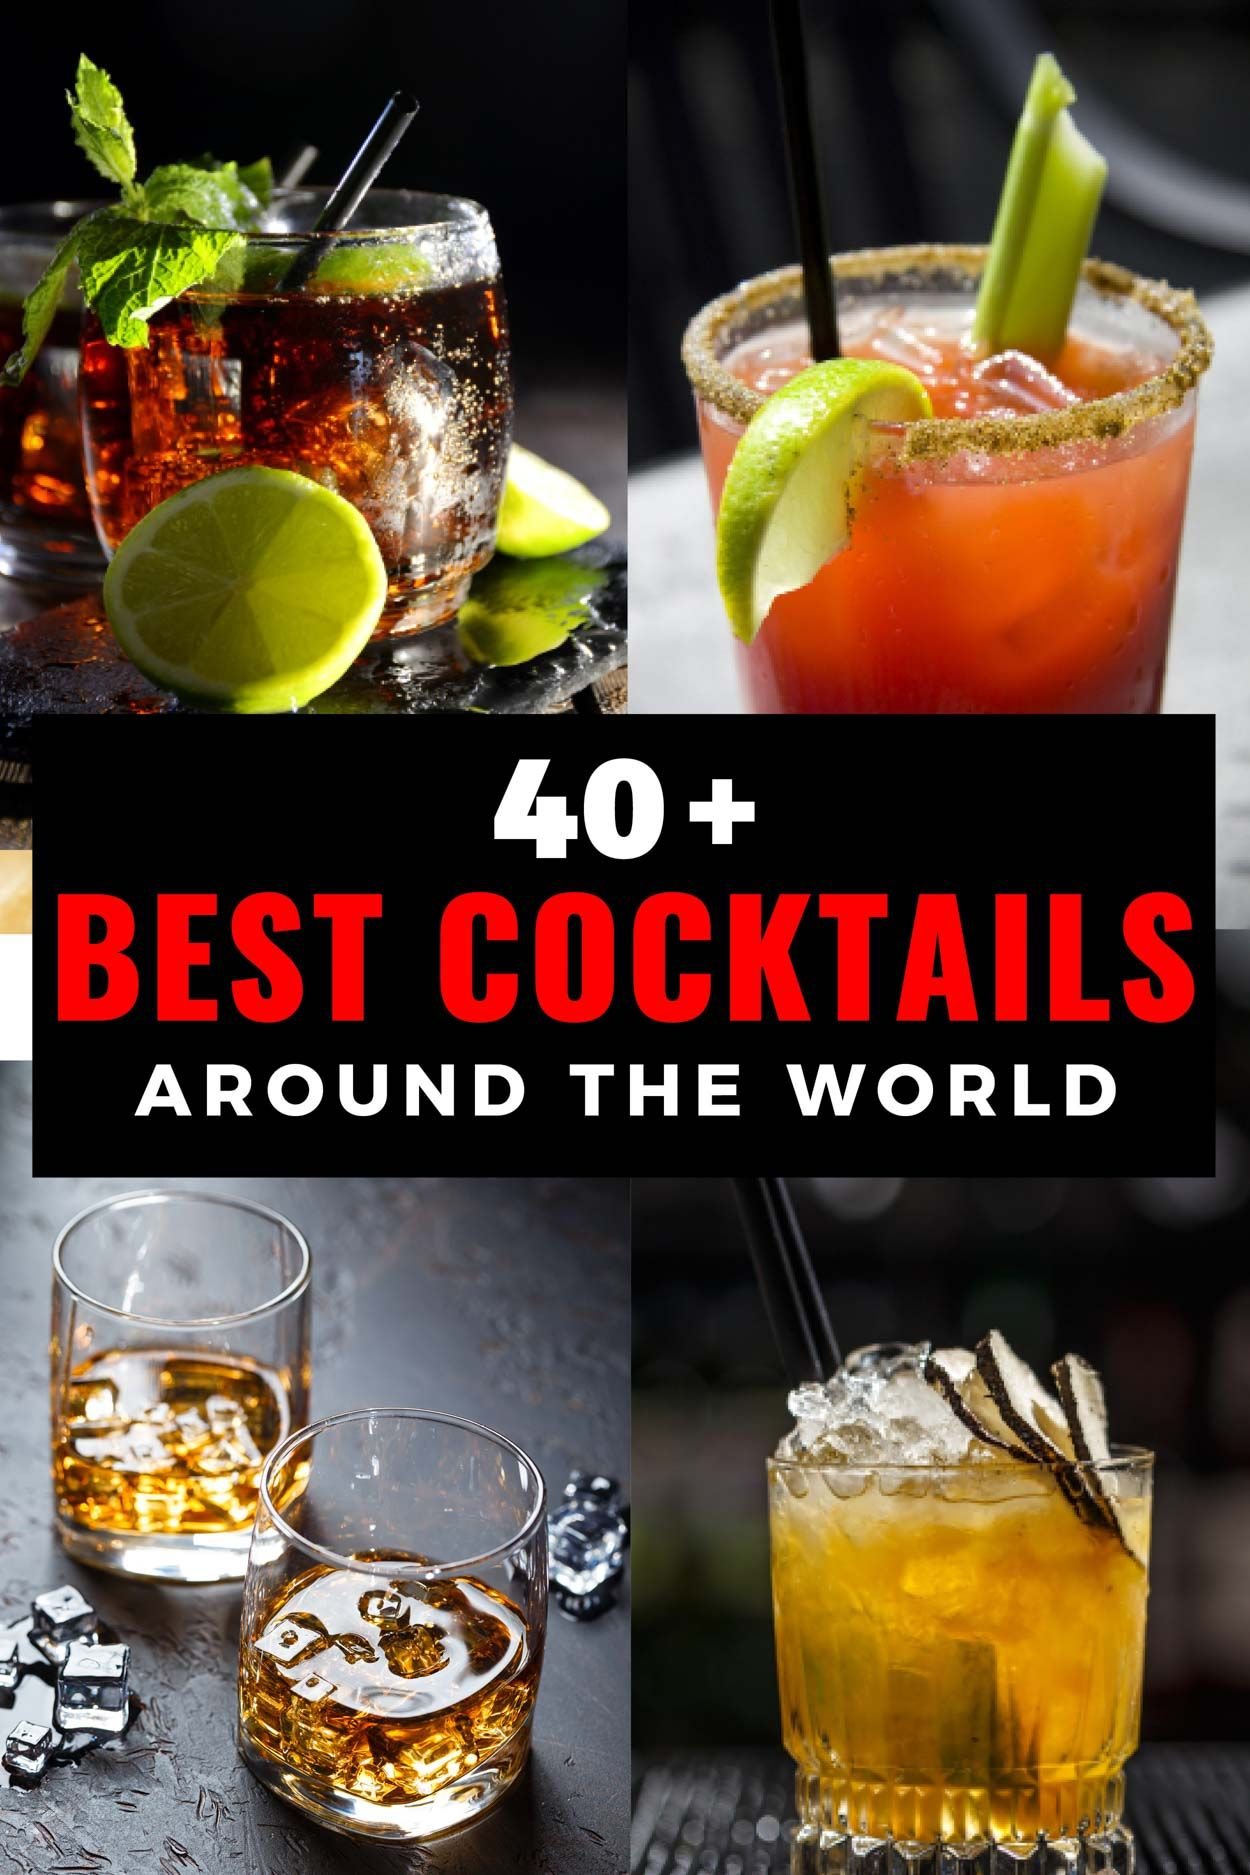 Best Cocktails Around The World How To Make Them Cocktail Recipes In 2020 Cocktail Recipes Easy Fun Cocktails Cocktail Recipes